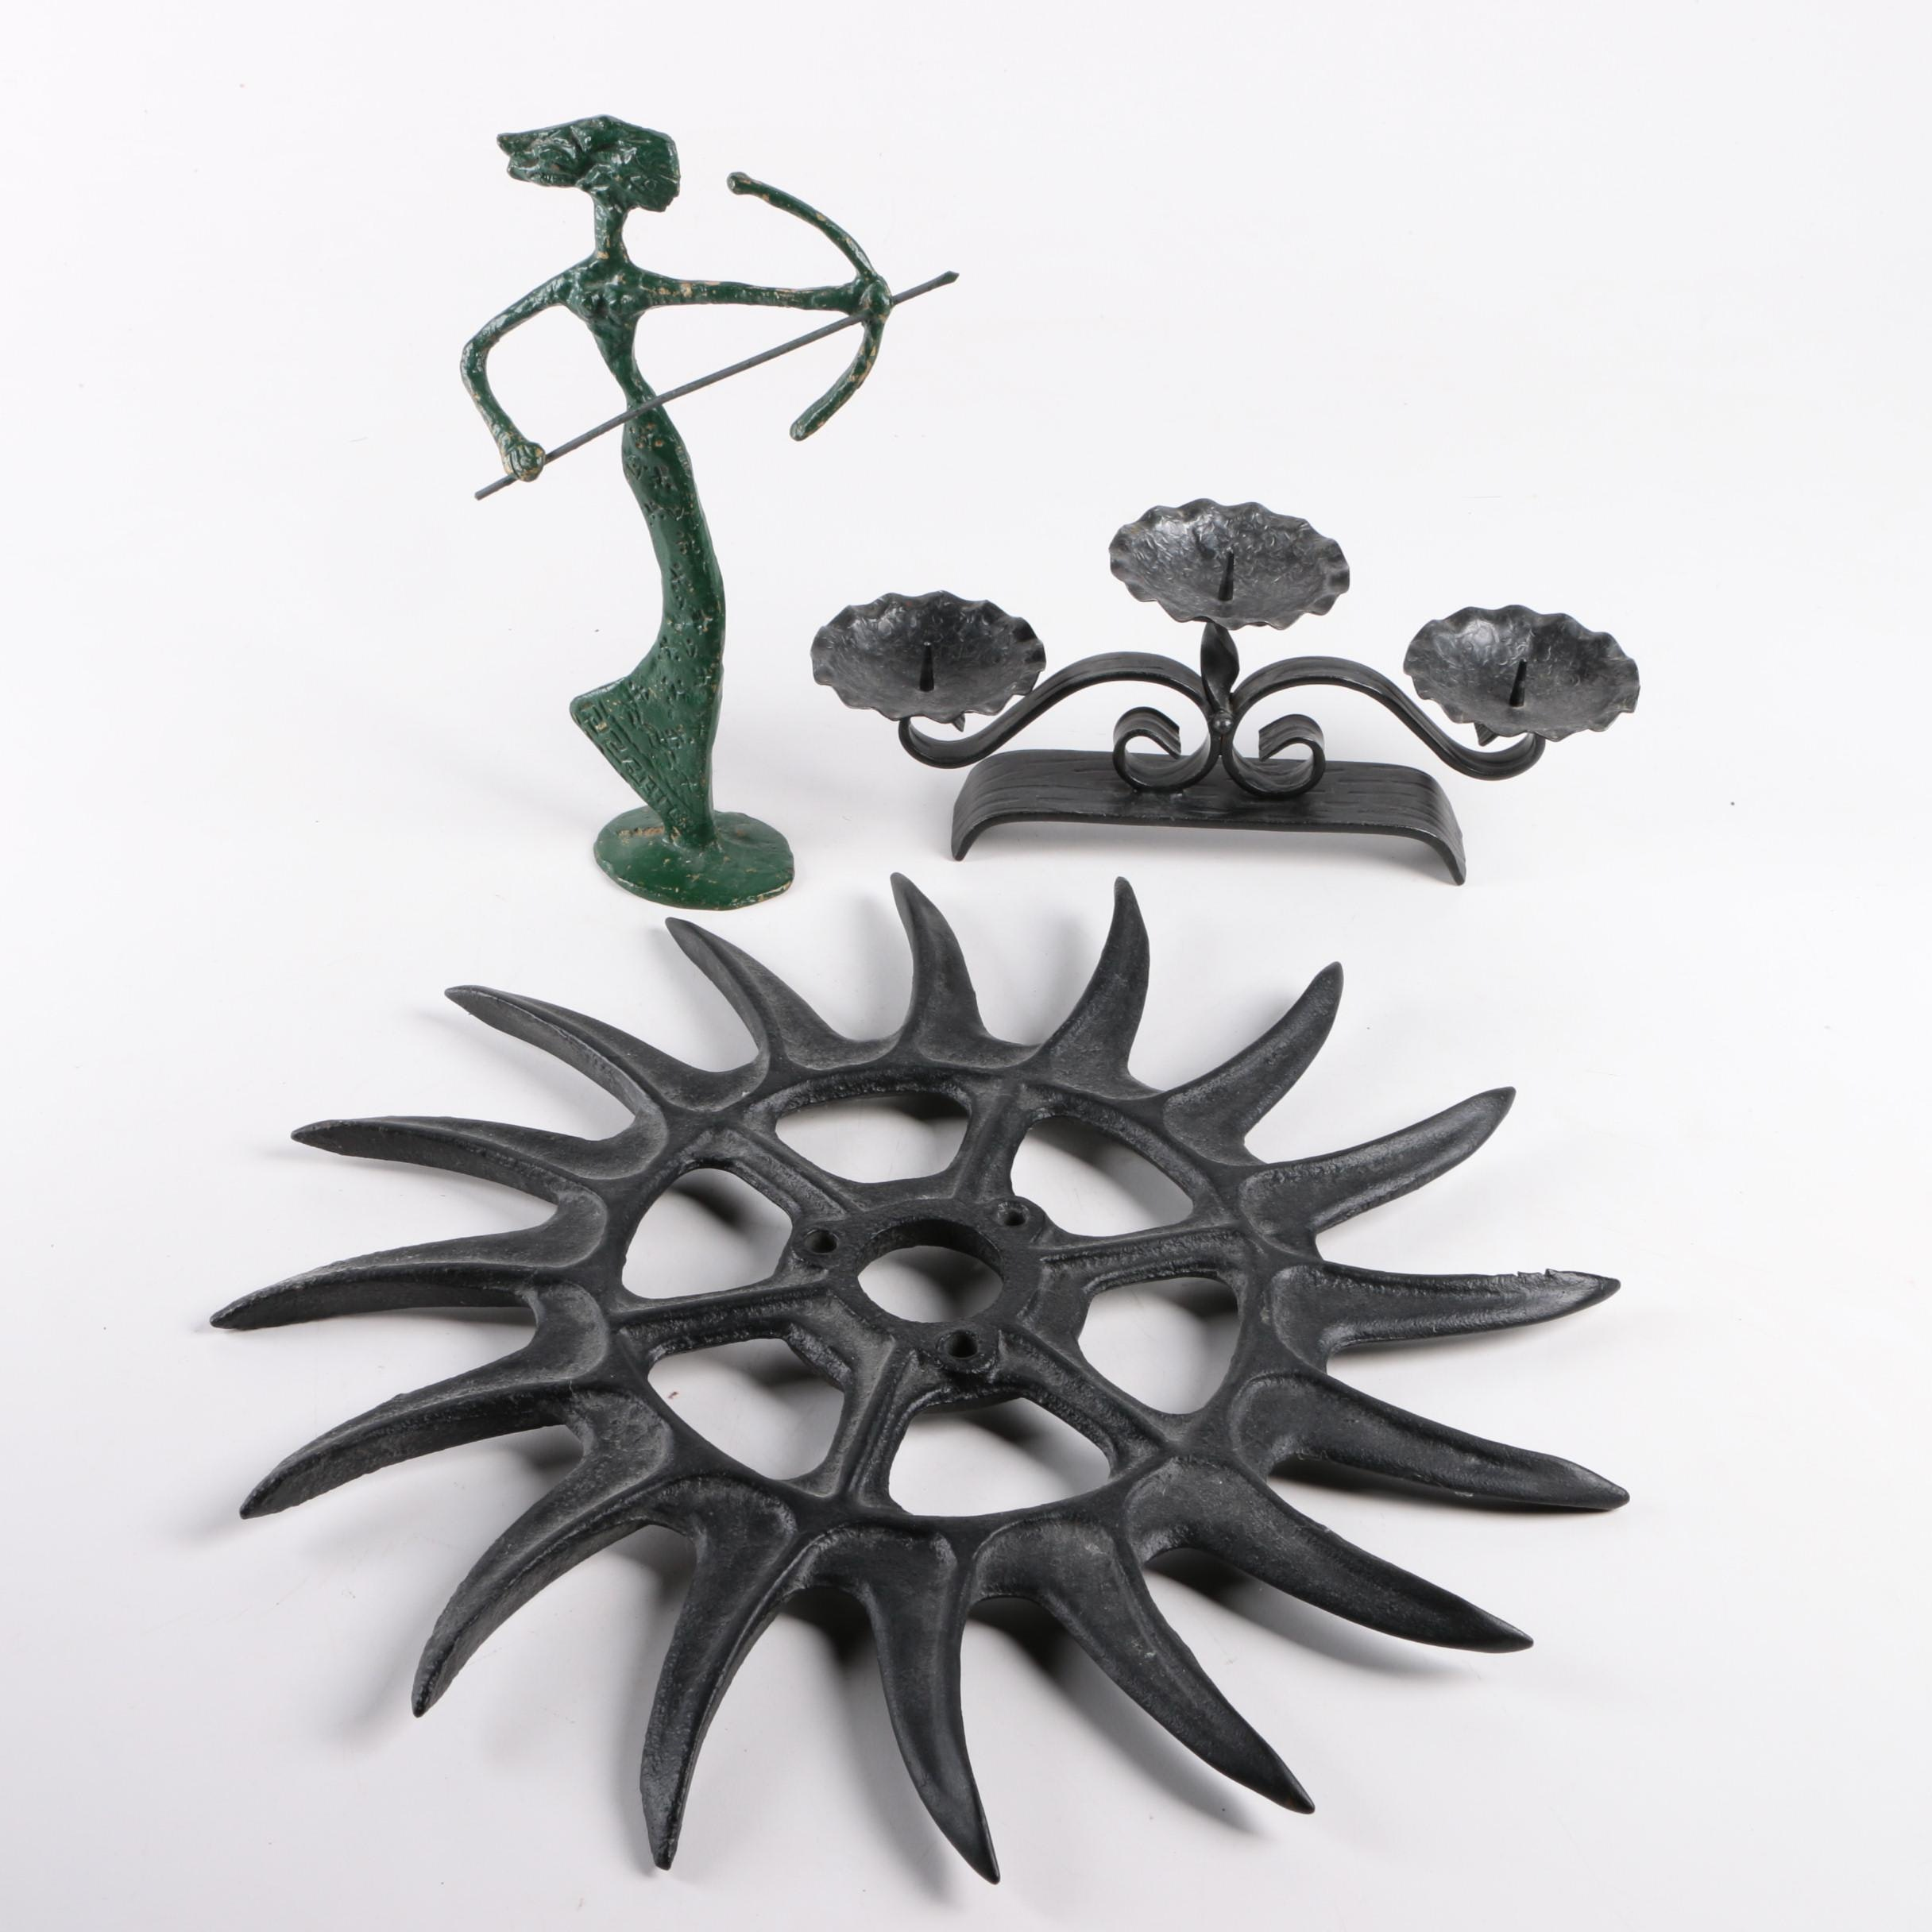 Collection of Metal Decor Items